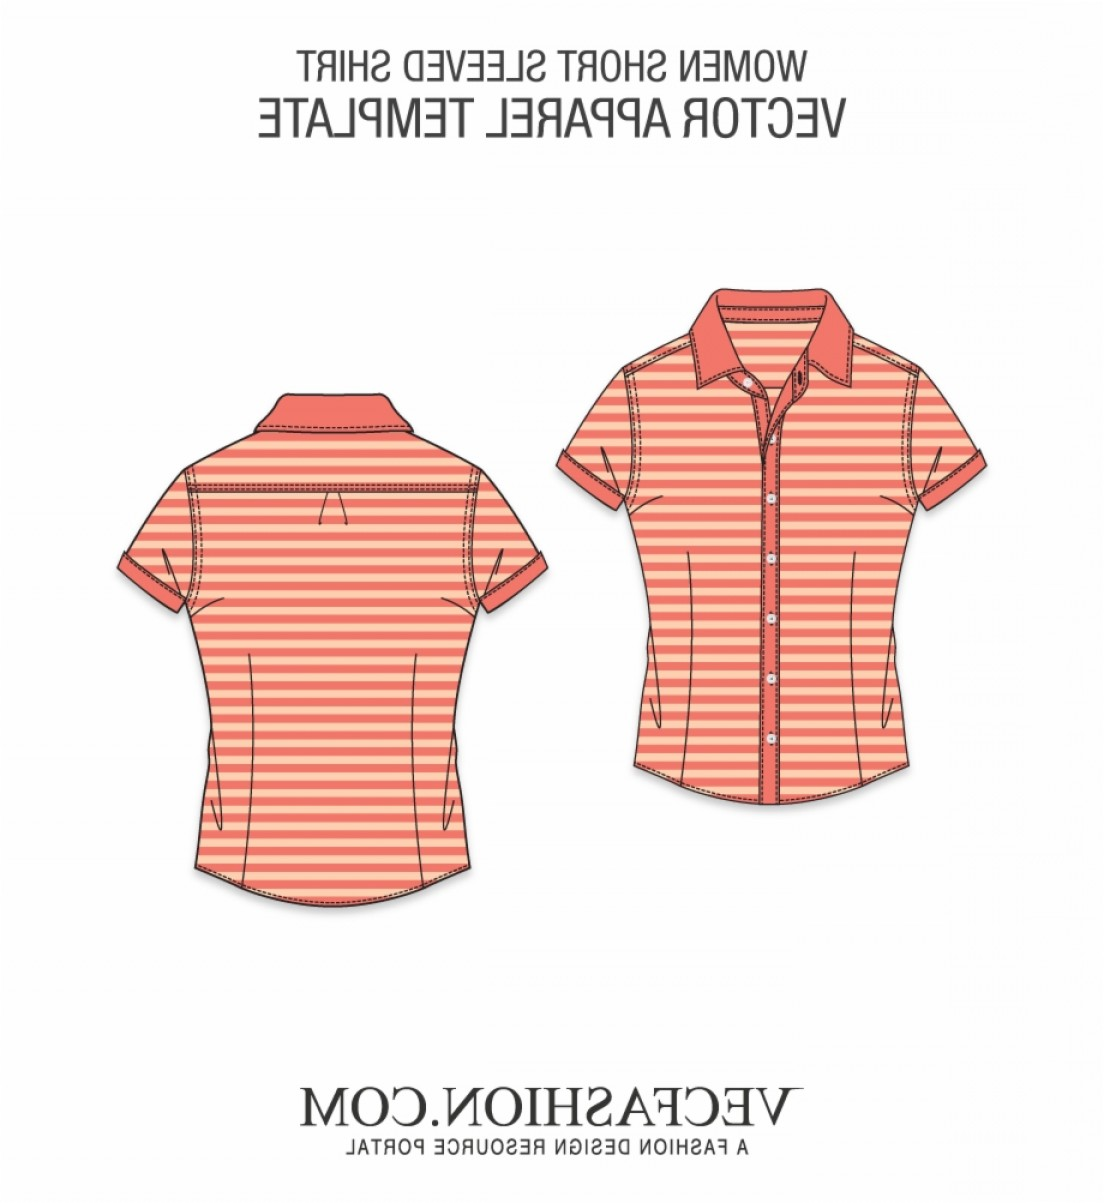 Female Polo Shirt Vector Template: Irbbrtmvector Shirts Dress Shirt Women Polo Shirt Vector